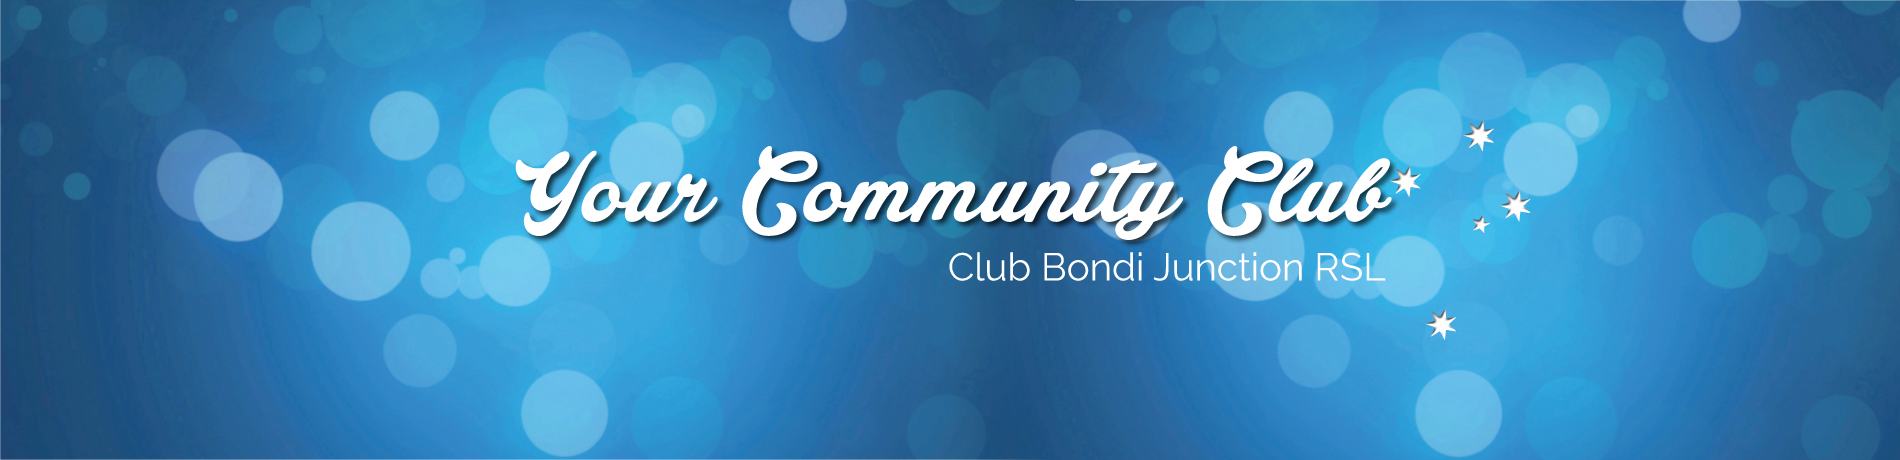 Club Bondi Junction RSL